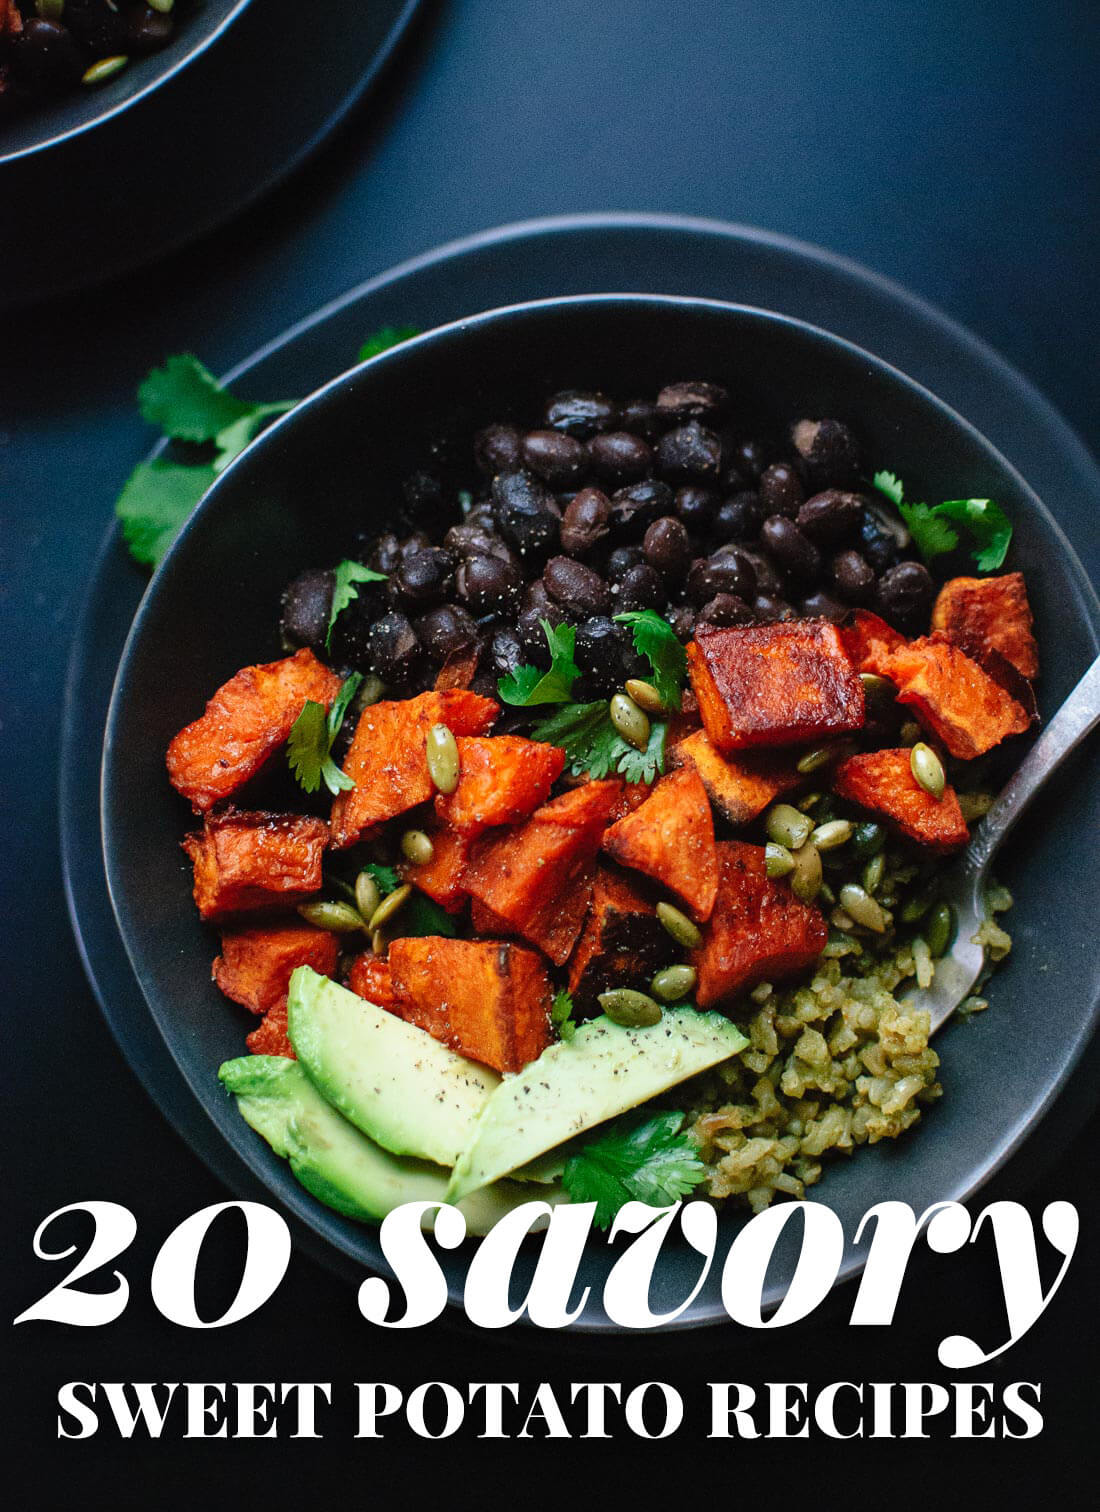 10 savory sweet potato recipes cookie and kate for Indian potato recipes for lunch